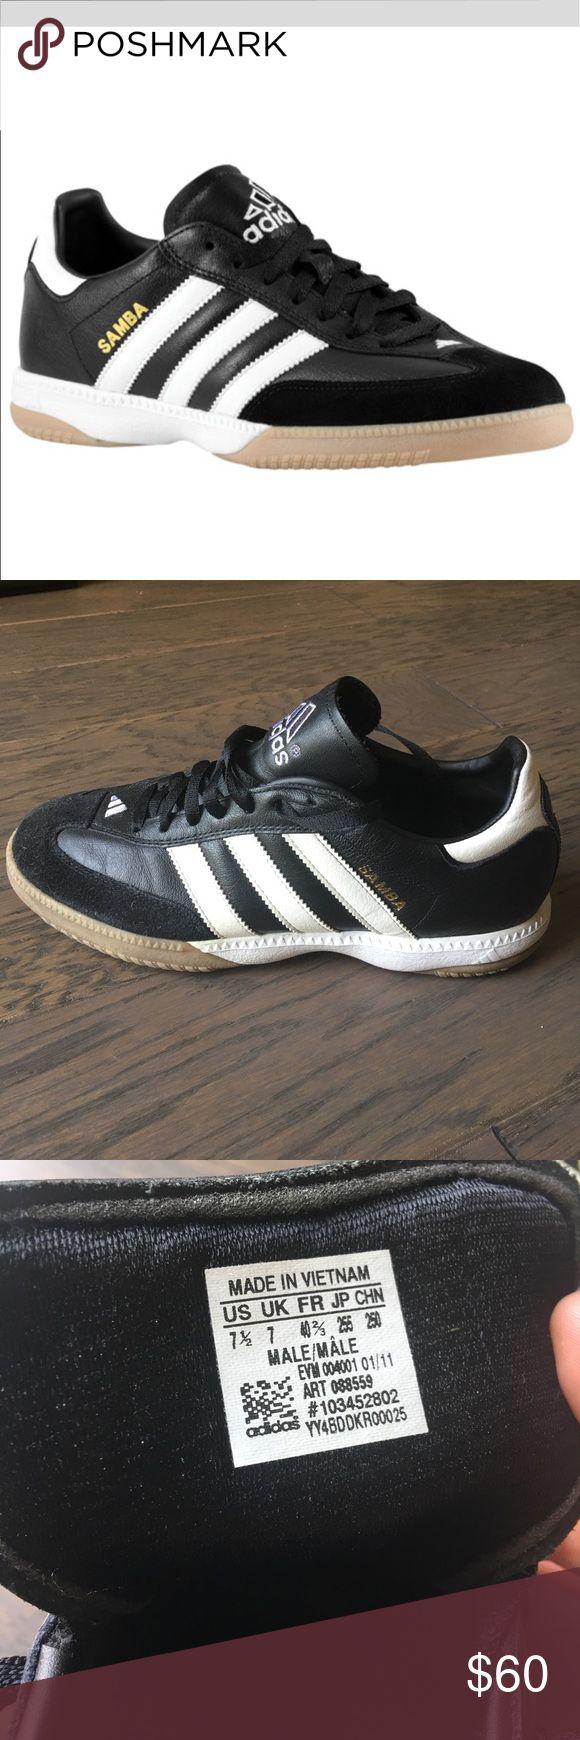 Adidas samba classic celebrity couples